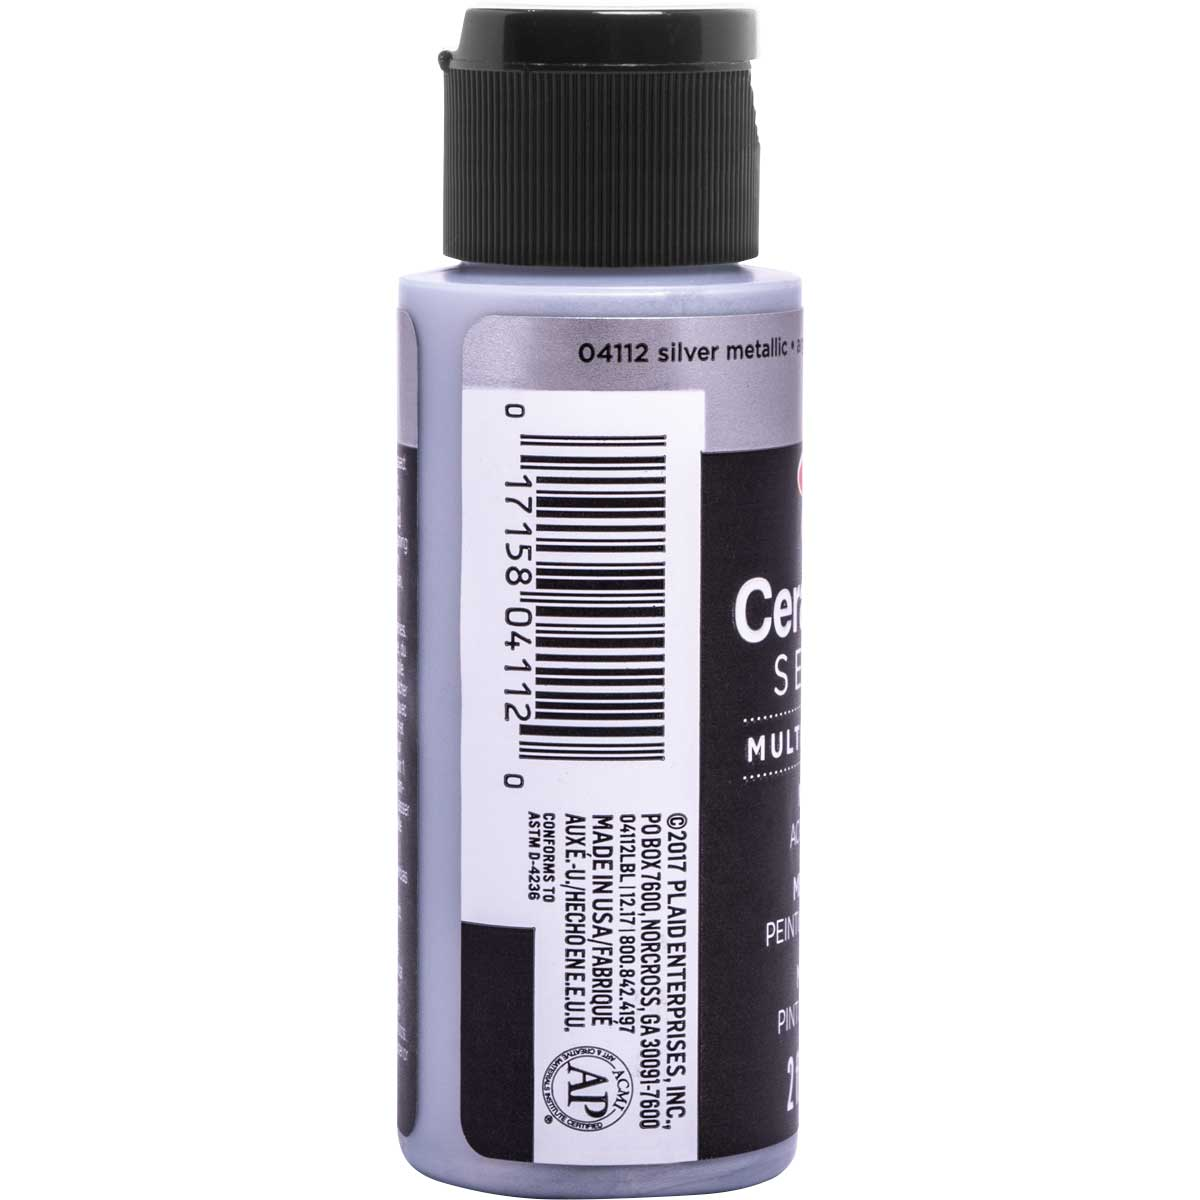 Delta Ceramcoat ® Select Multi-Surface Acrylic Paint - Metallic - Silver, 2 oz.